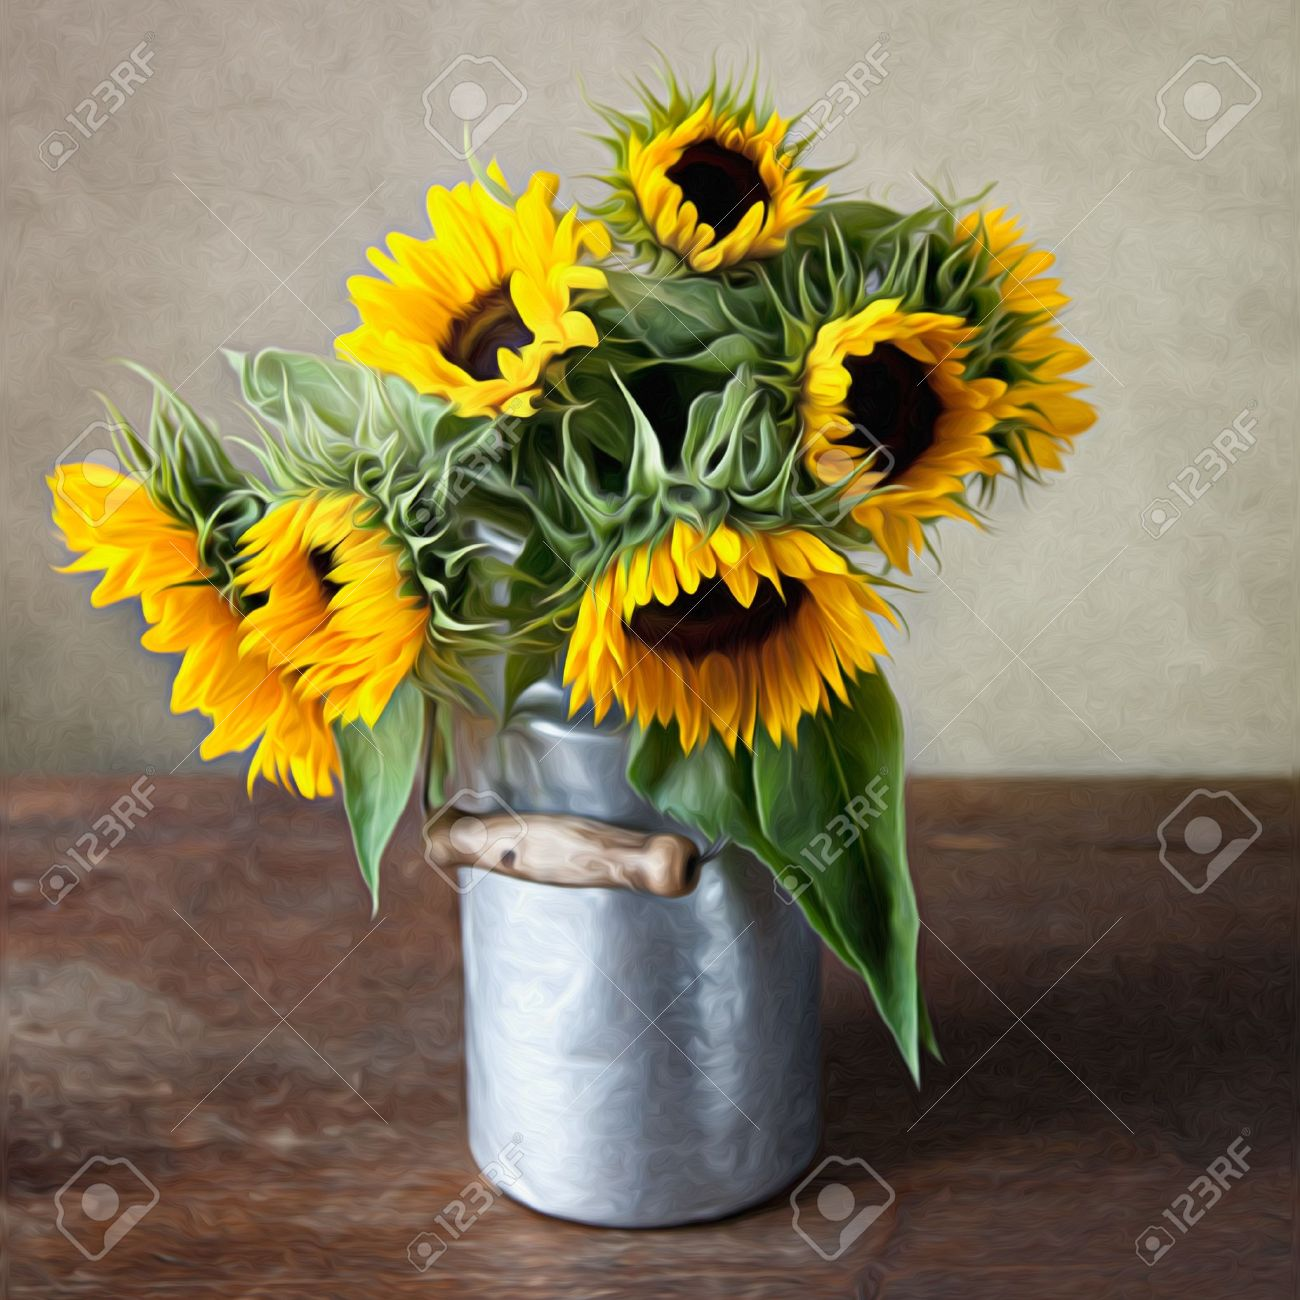 Sunflowers in Oil Painting